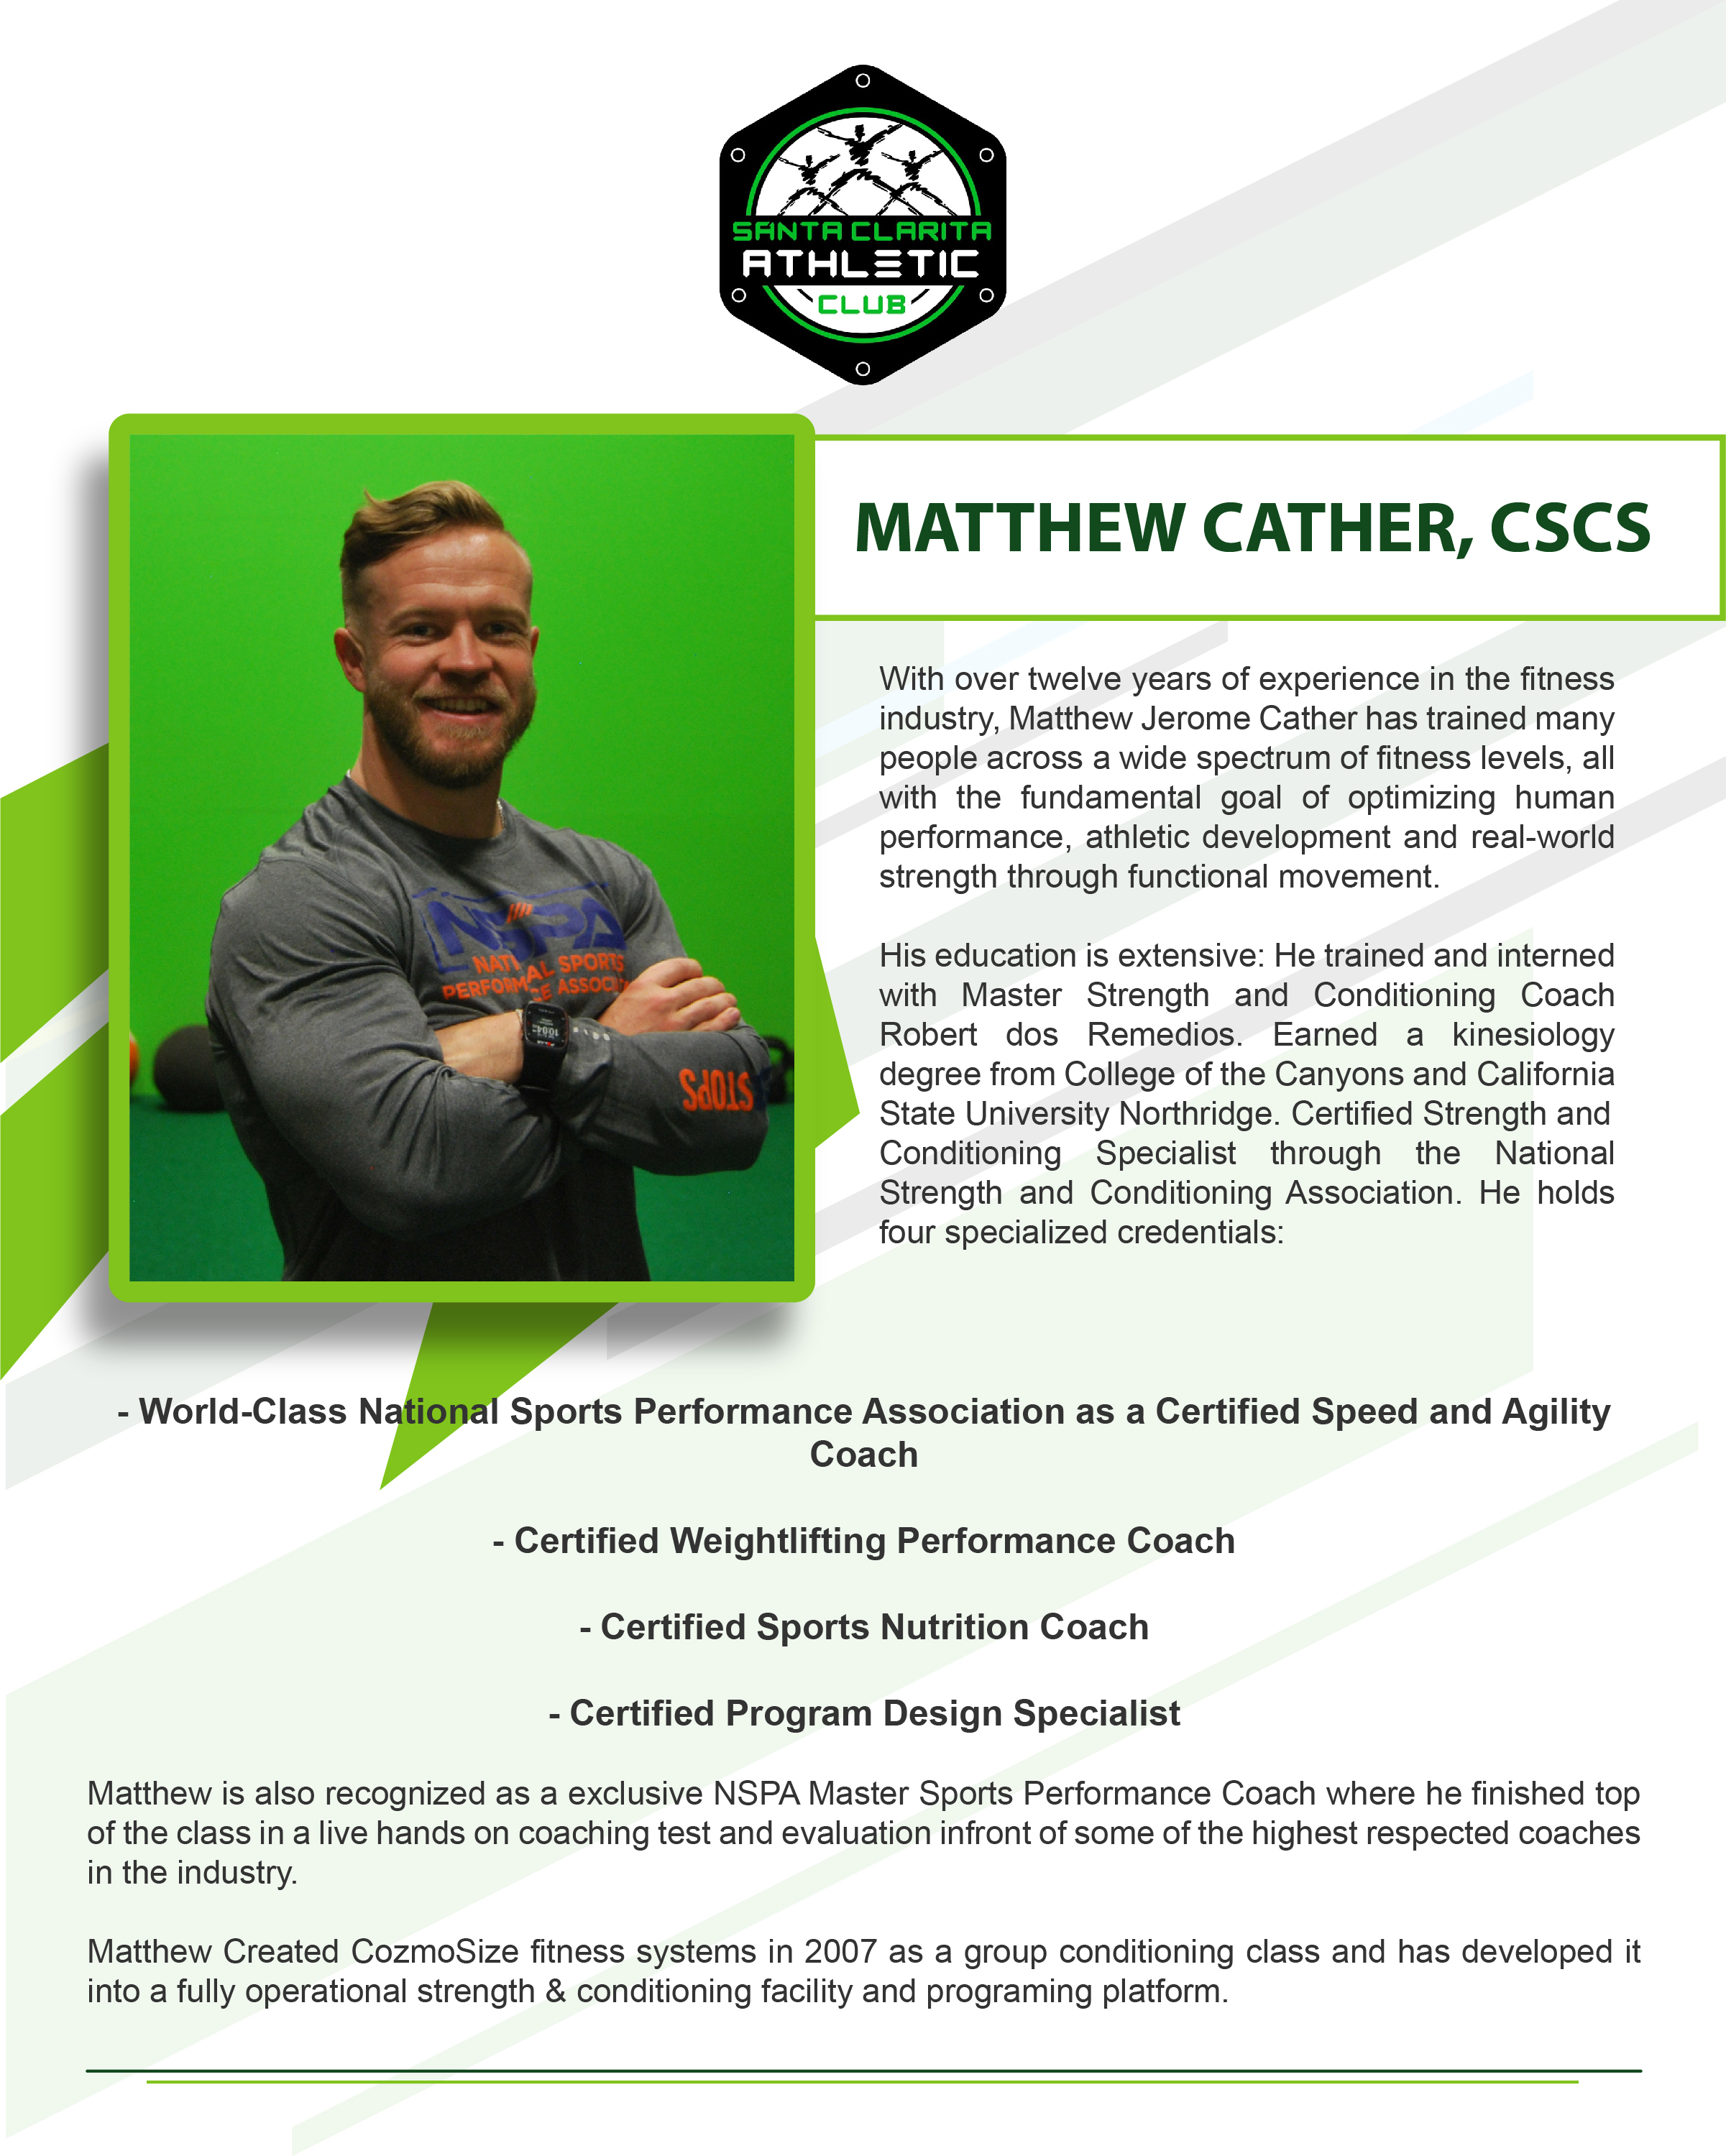 Matthew Cather - CSCS Certified Personal Trainer